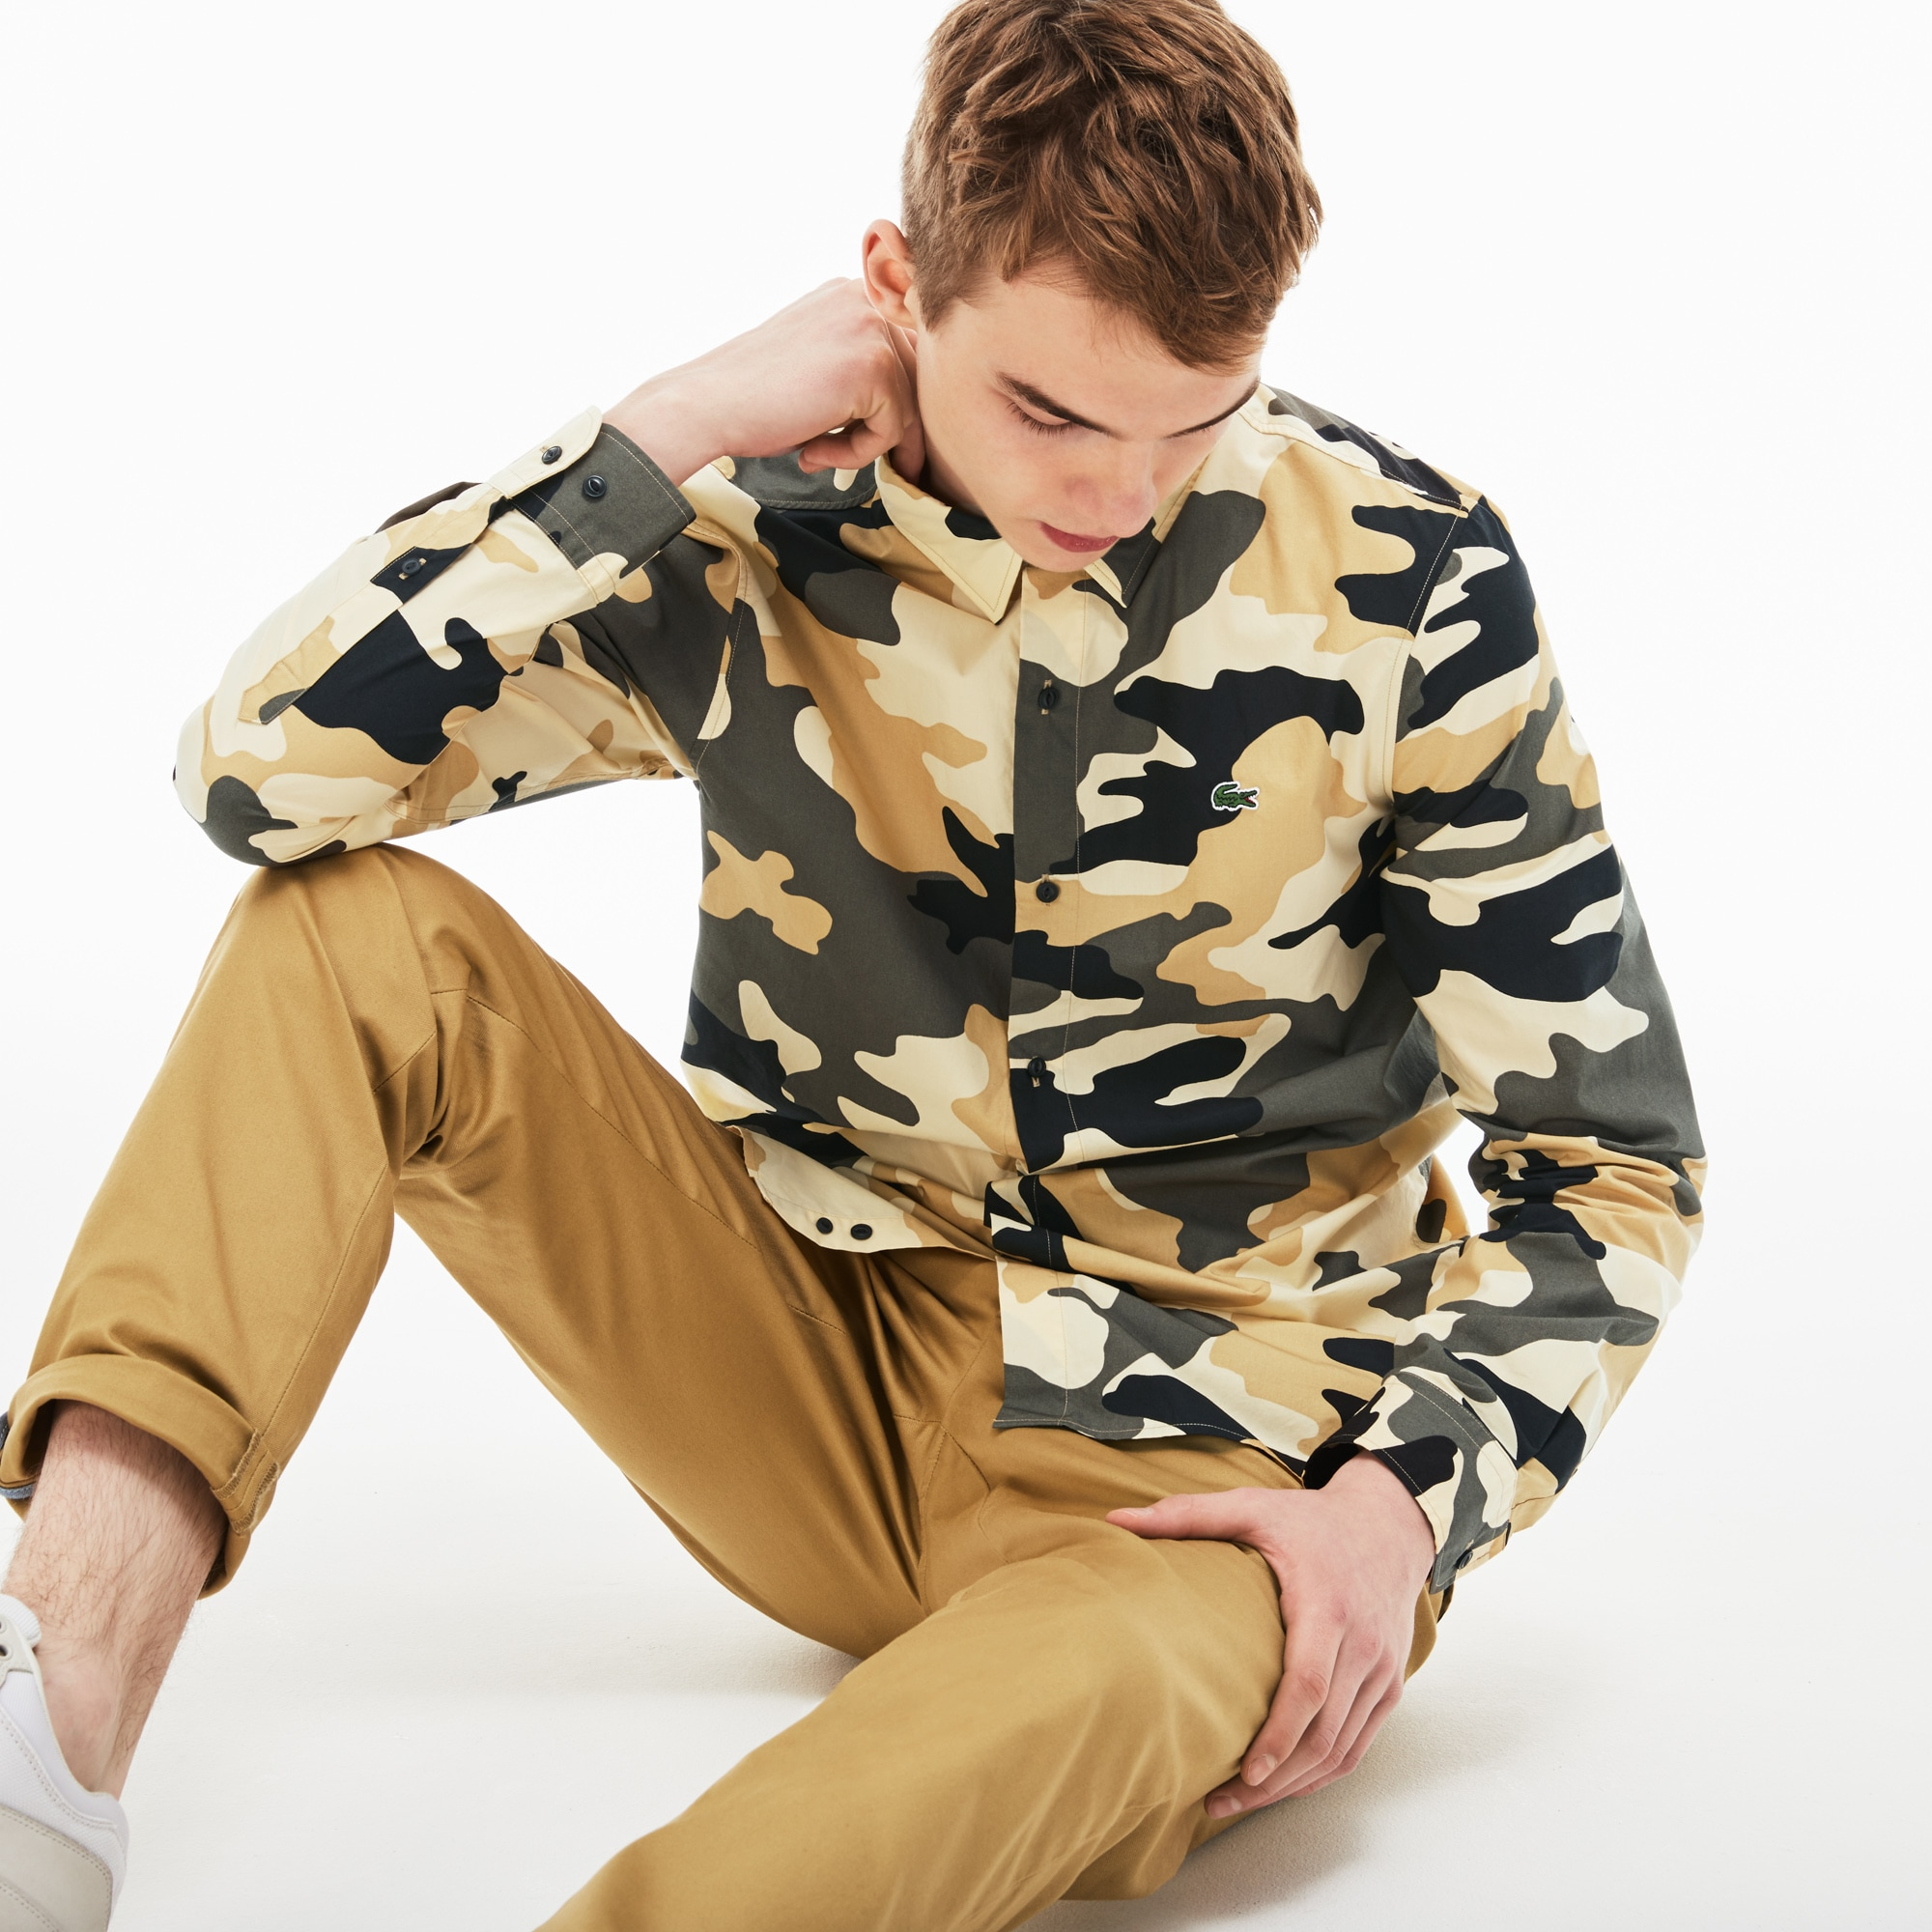 Men's LIVE Slim Fit Camouflage Shirt